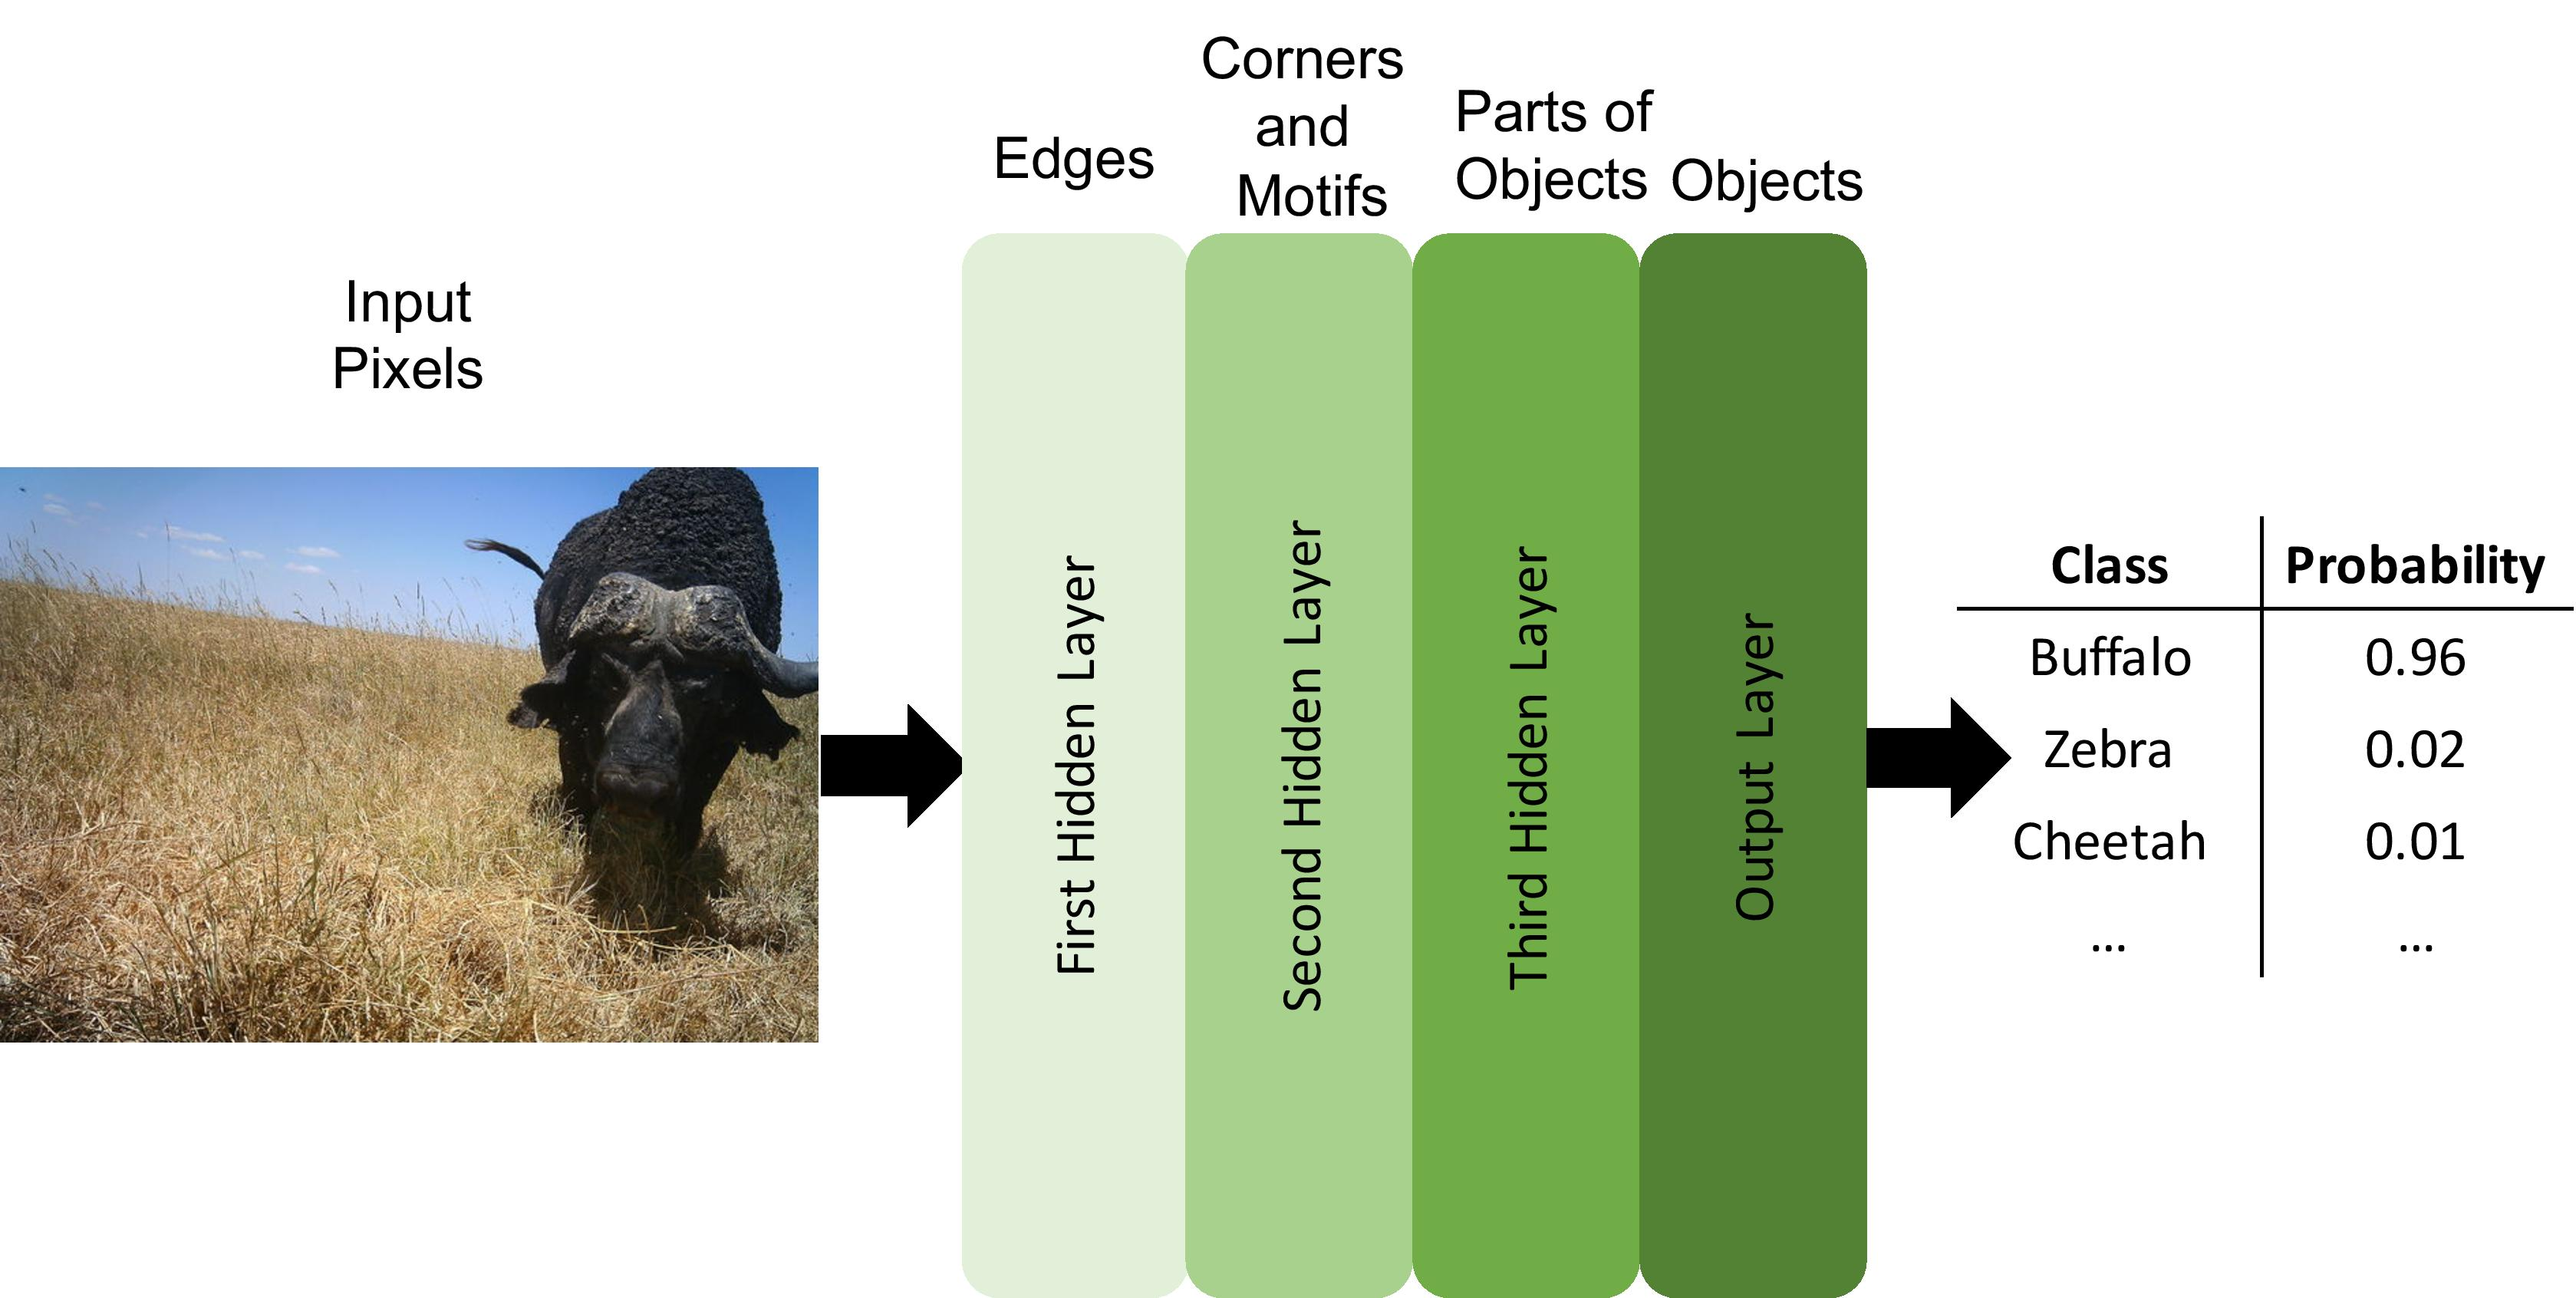 Neural networks recognize numerical patterns. Deep neural networks have several layers of abstraction that tend to gradually convert raw data into more abstract concepts. For example, raw pixels at the input layer are first processed to detect edges (first hidden layer), then corners and textures (second hidden layer), then object parts (third hidden layer), and so on if there are more layers, until a final prediction is made by the output layer. The types of features learned at each layer are not human-specified, but emerge automatically as the network learns how to solve a given task.